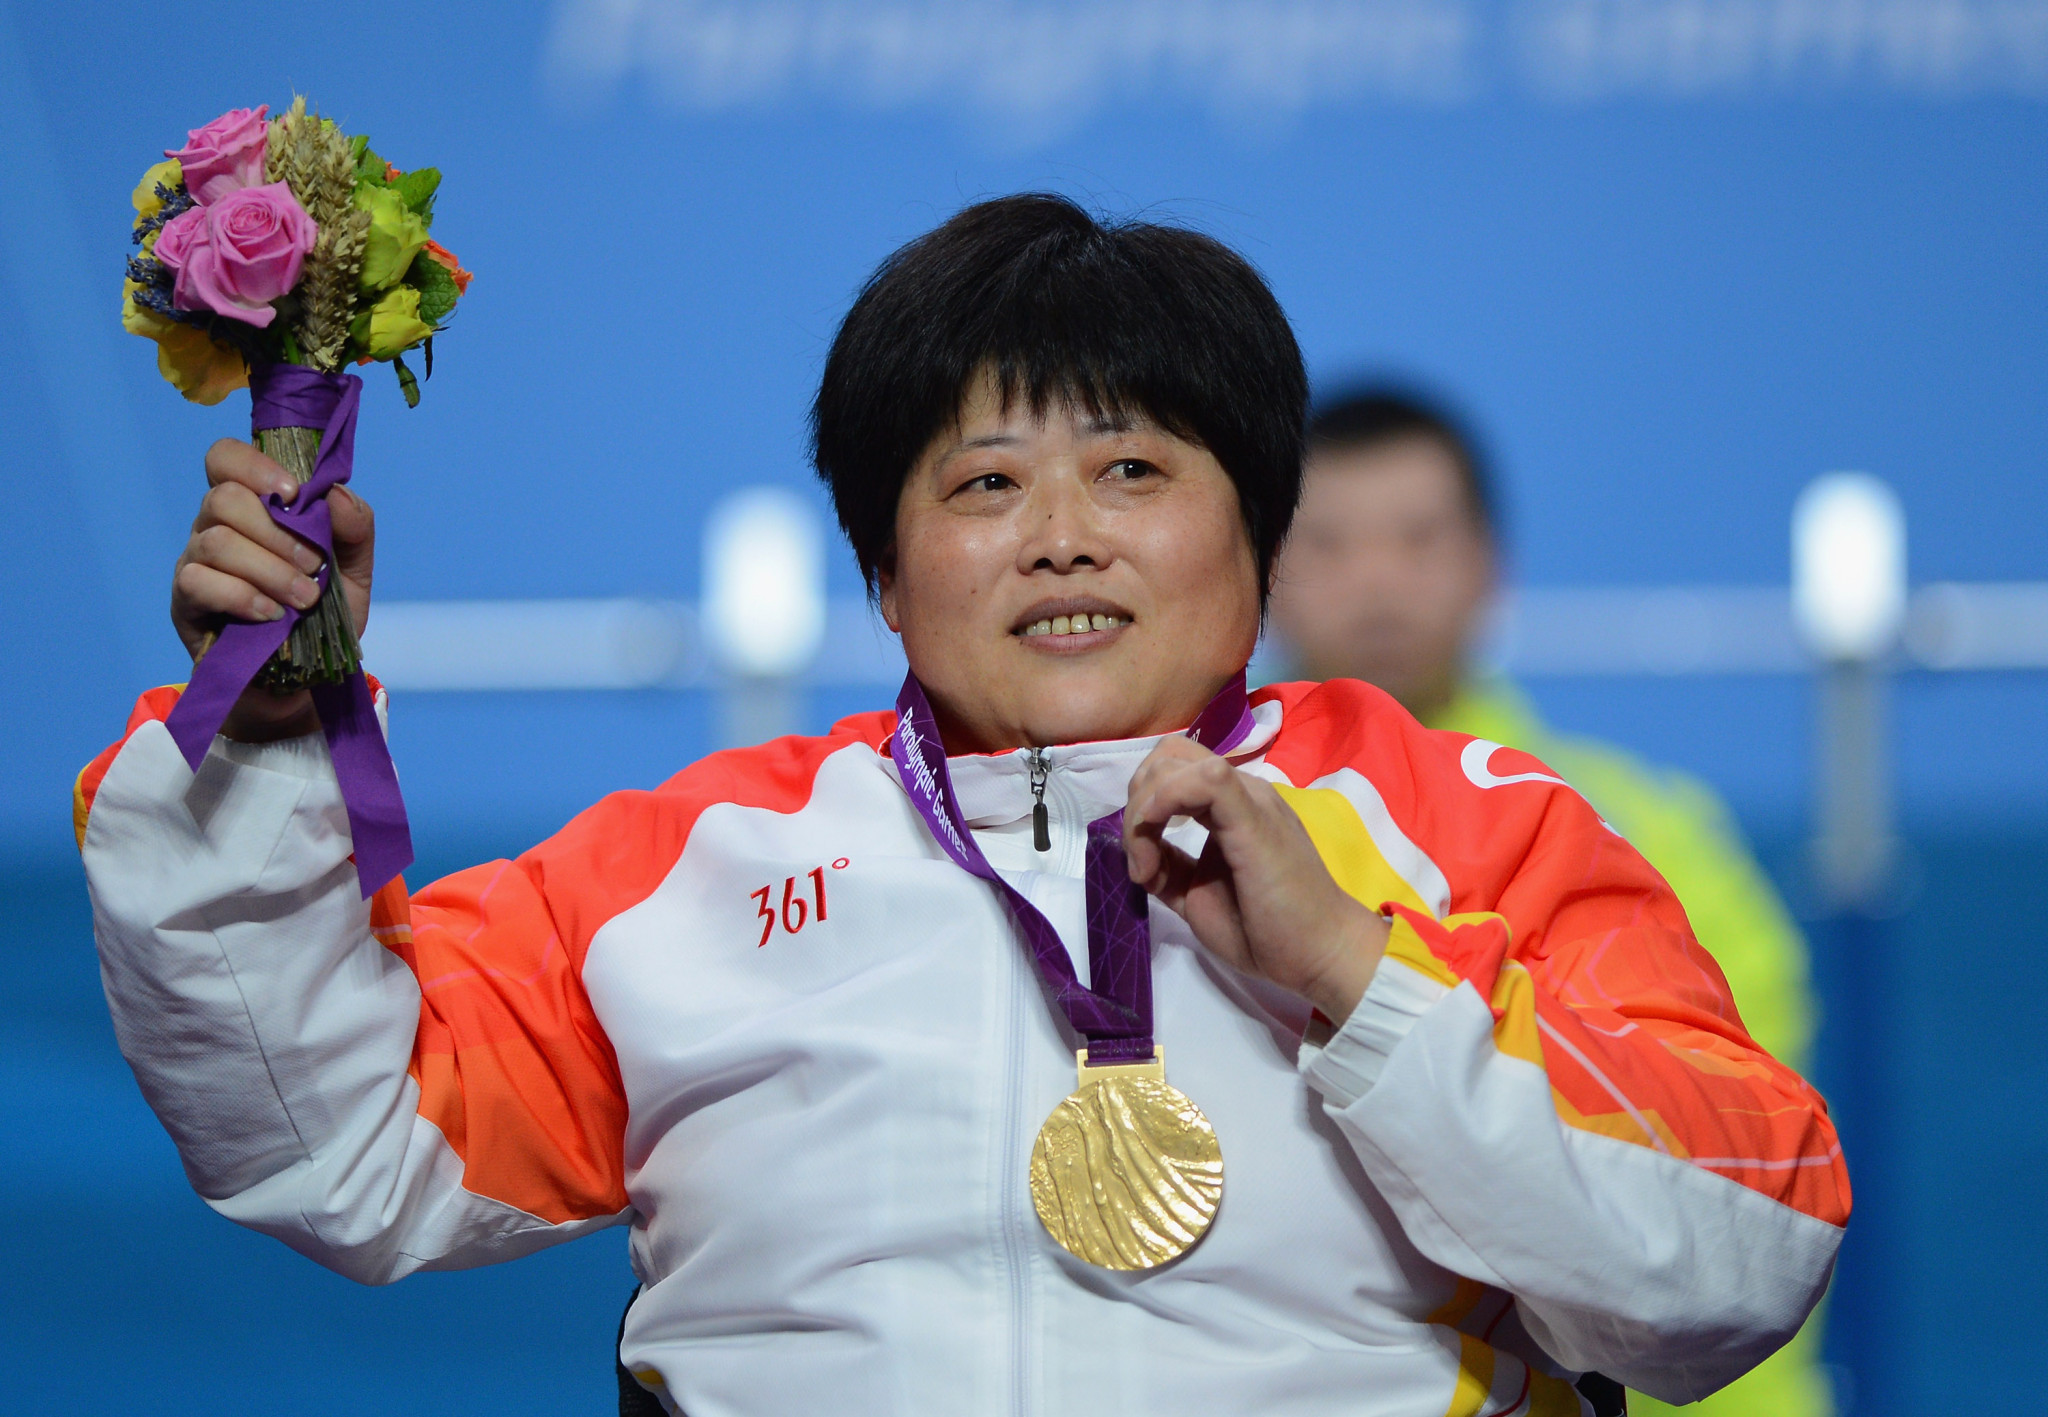 The double Paralympic champion will not be able to seek a third gold at Tokyo 2020 ©Getty Images